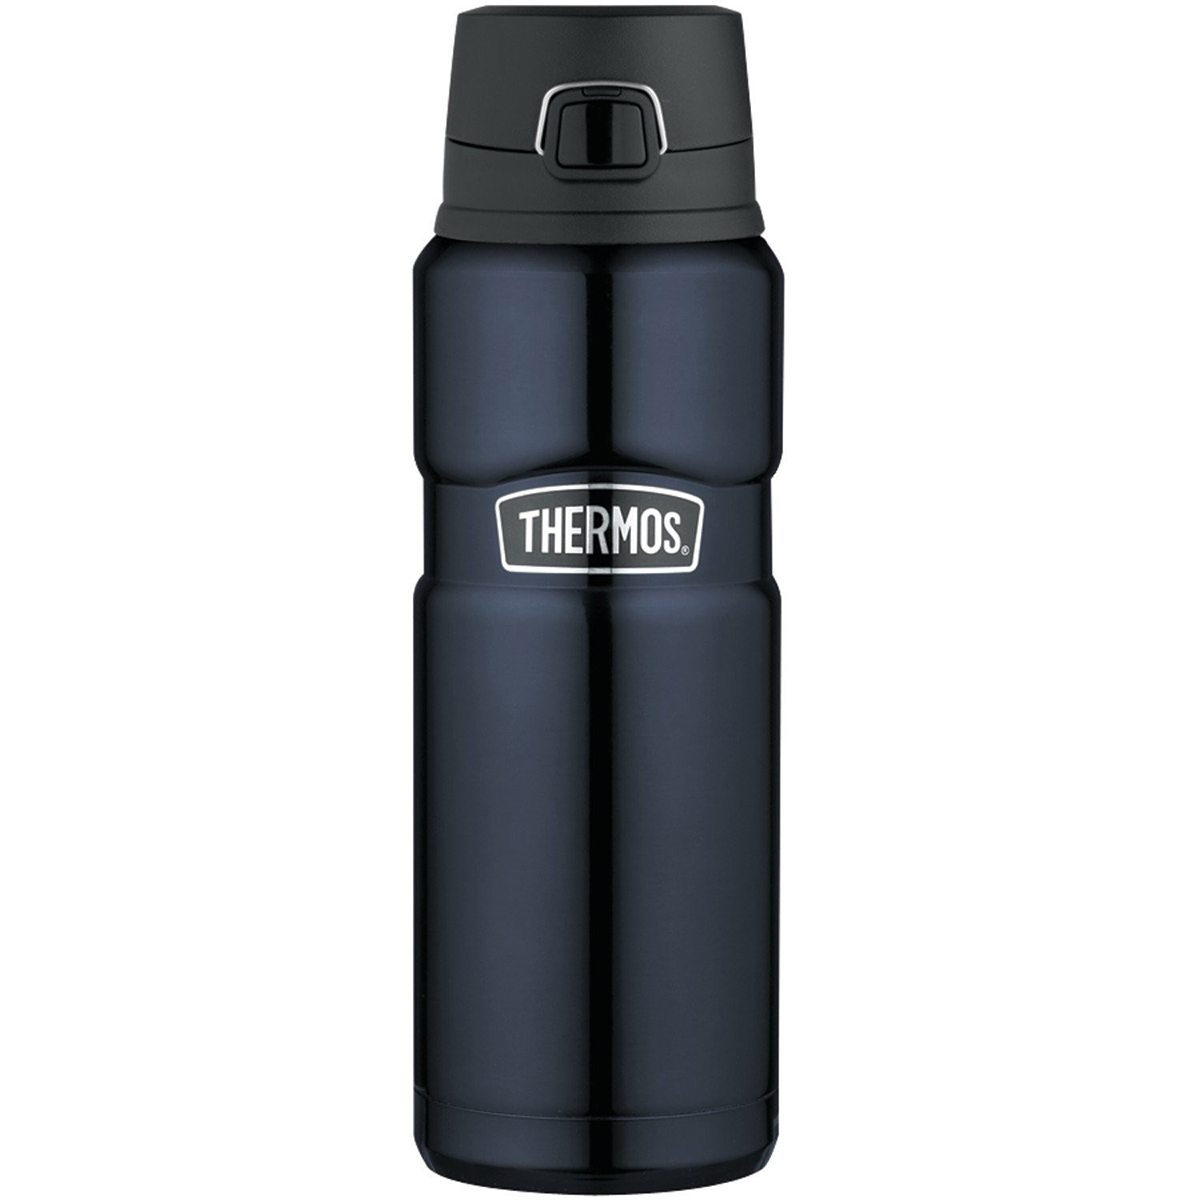 thumbnail 3 - Thermos 24 oz. Stainless King Vacuum Insulated Stainless Steel Drink Bottle